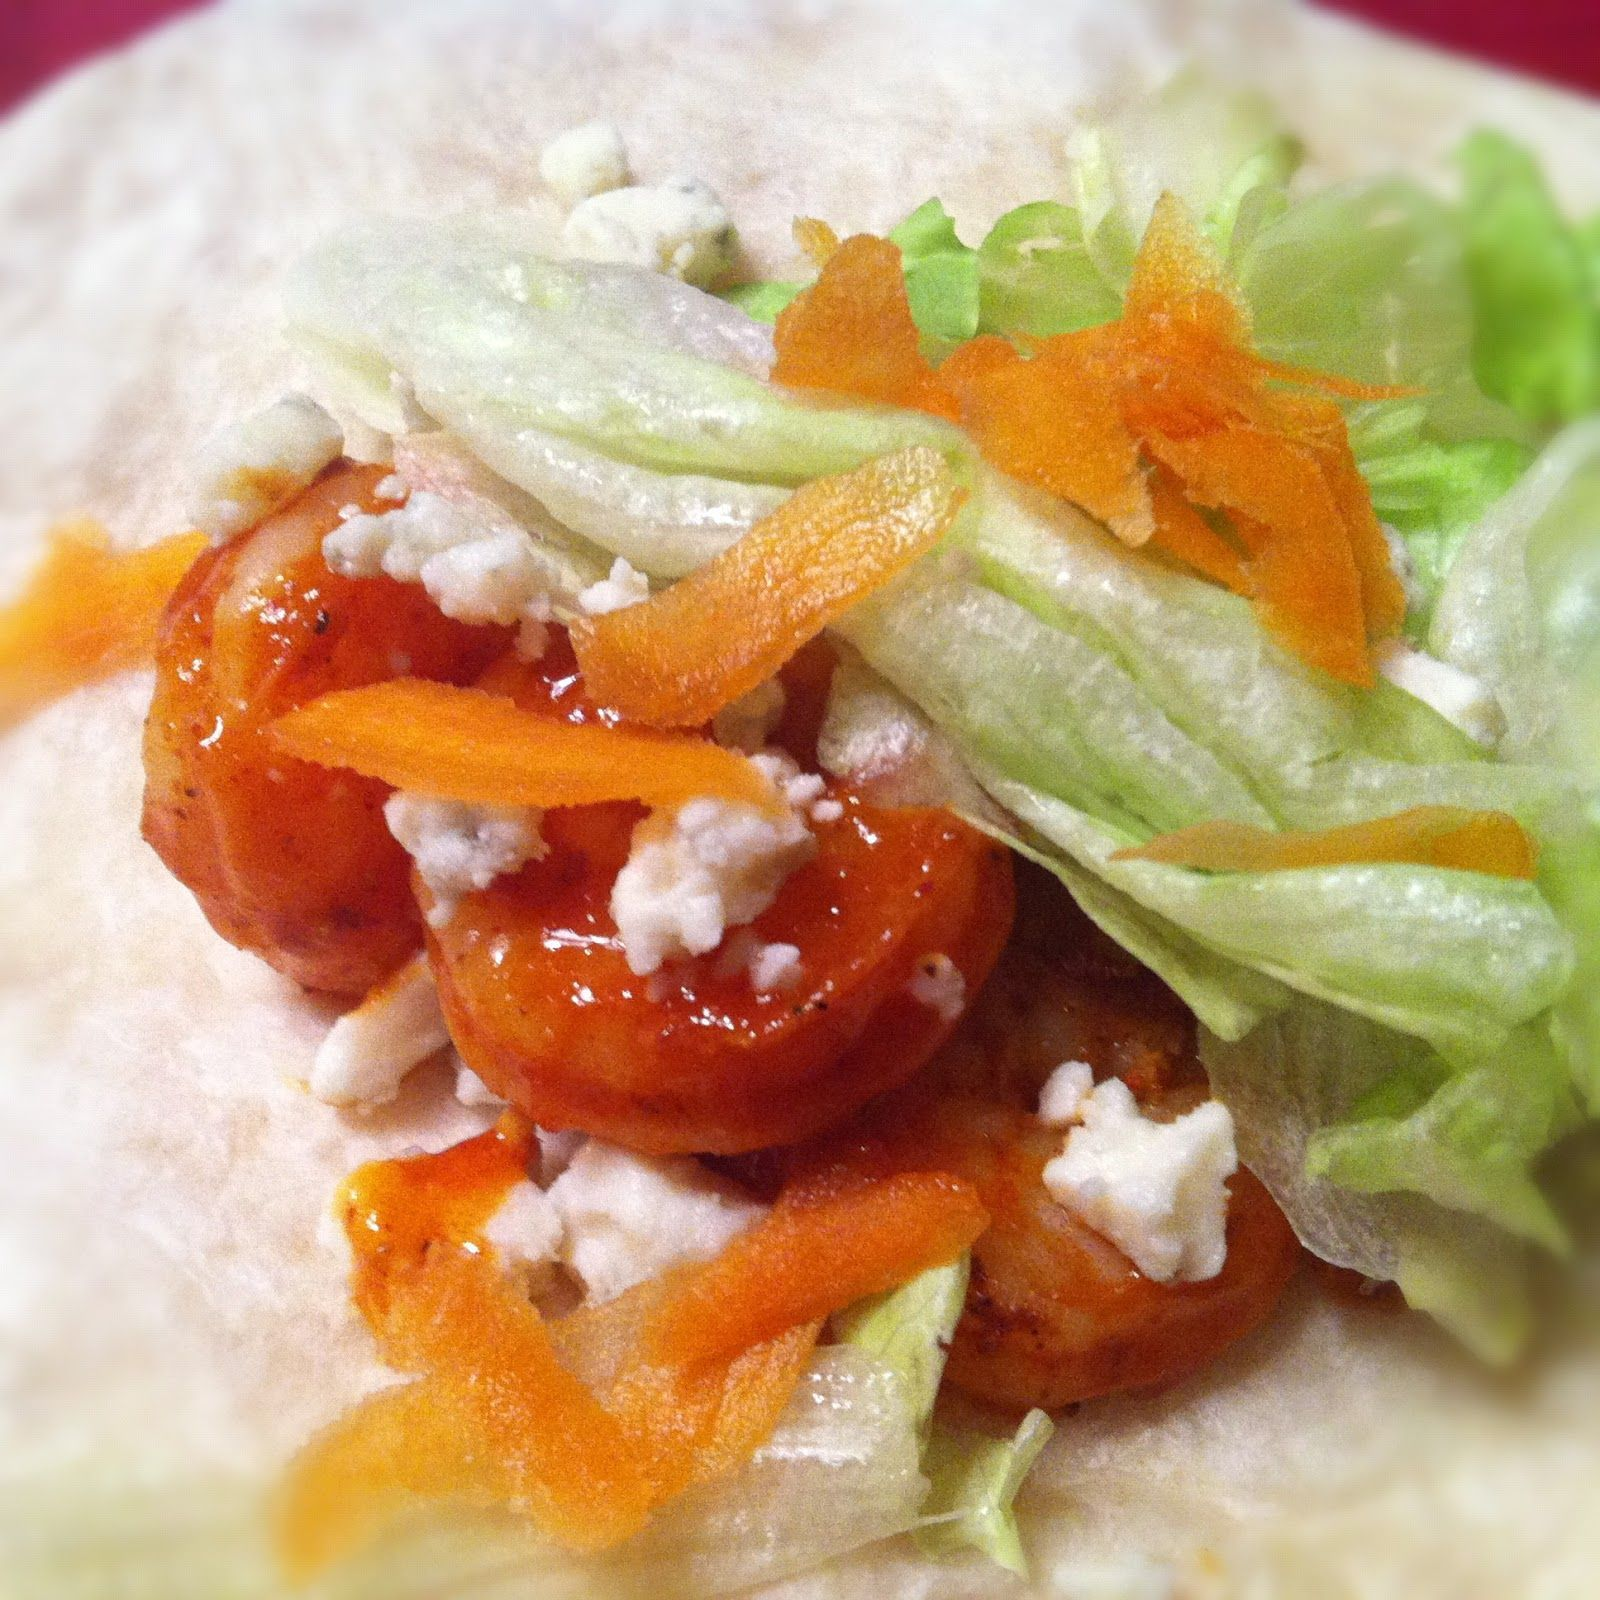 Buffalo Shrimp Tacos  What's Cooking in the Burbs #buffaloshrimp Buffalo Shrimp Tacos  What's Cooking in the Burbs #buffaloshrimp Buffalo Shrimp Tacos  What's Cooking in the Burbs #buffaloshrimp Buffalo Shrimp Tacos  What's Cooking in the Burbs #buffaloshrimp